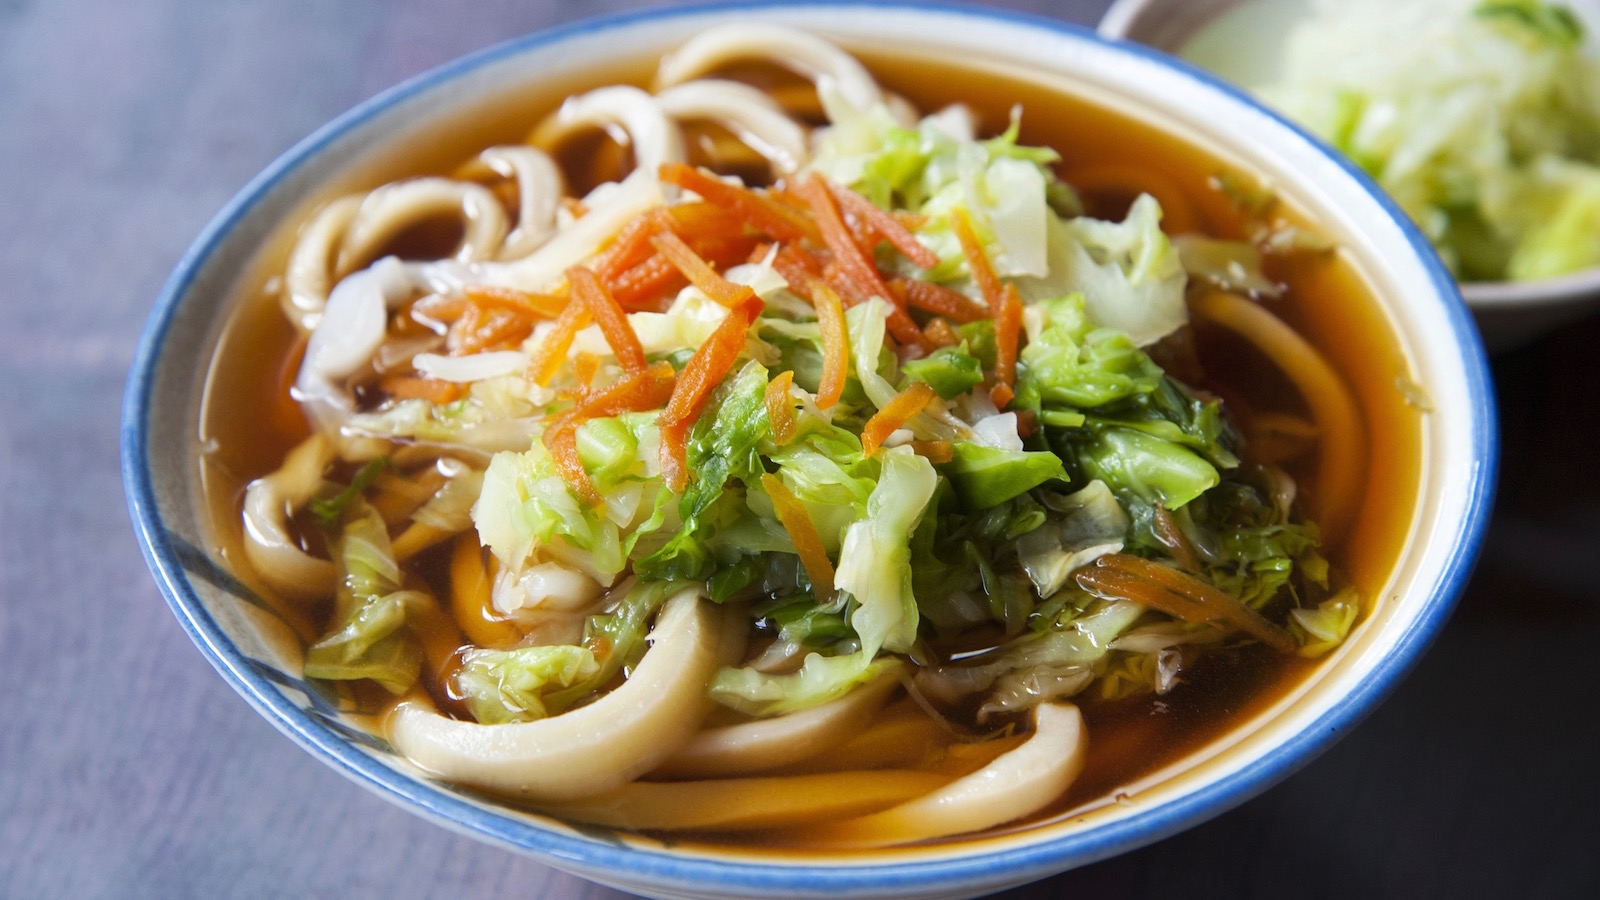 spicy udon from Mongolia vegan cookbook